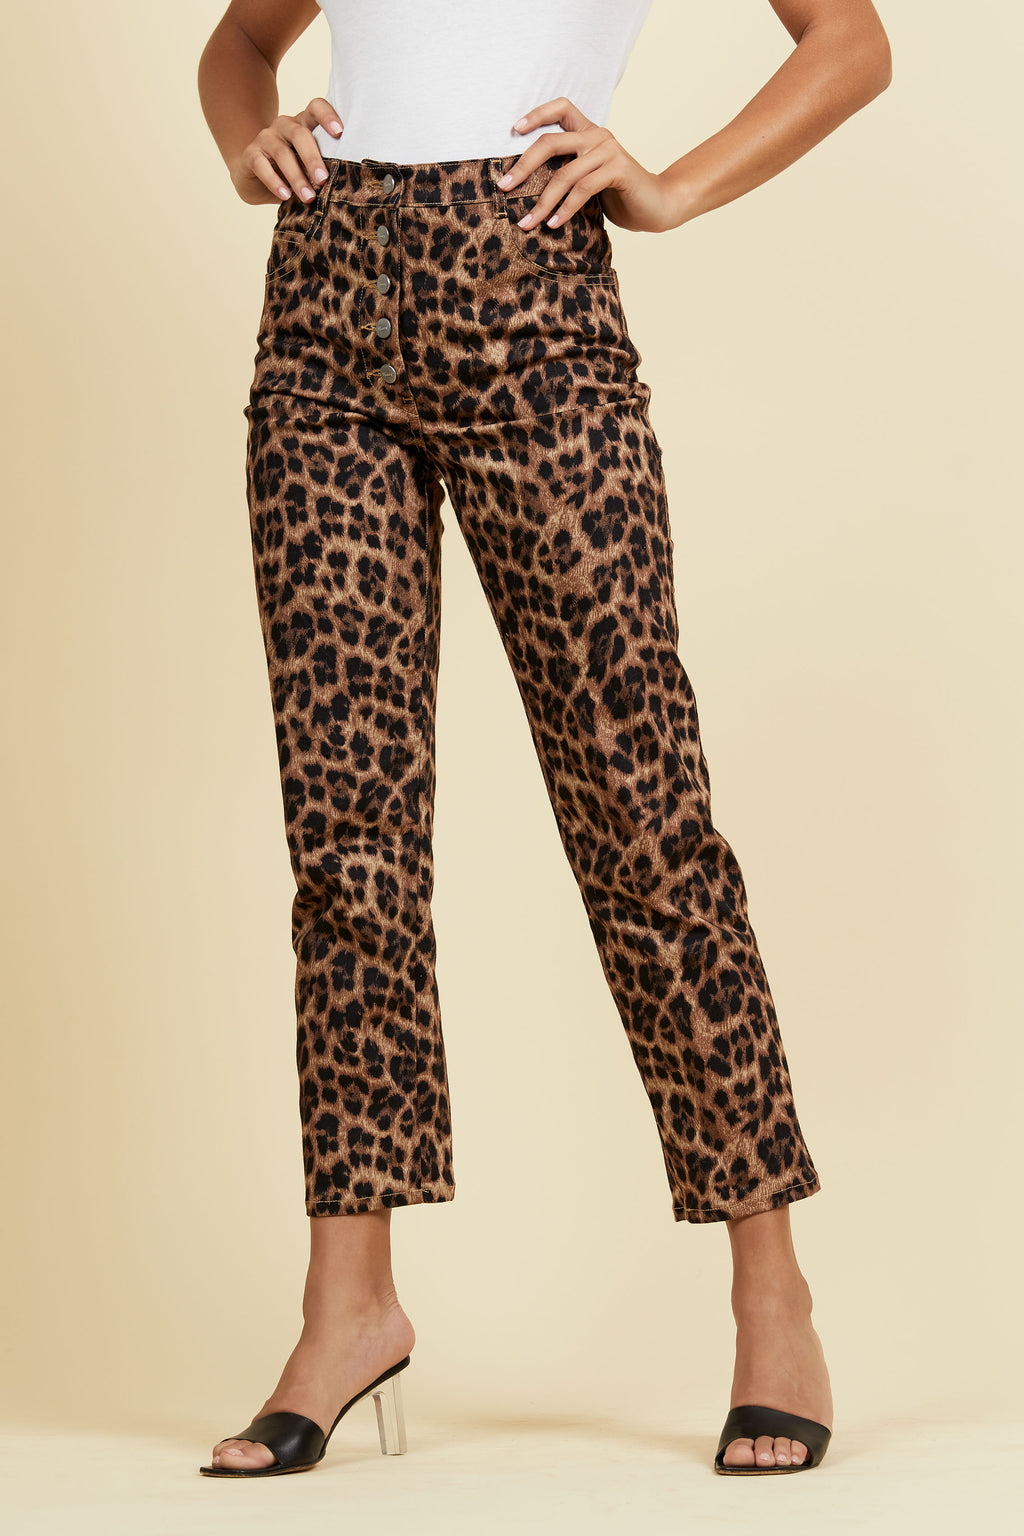 leopard print high waisted jeans